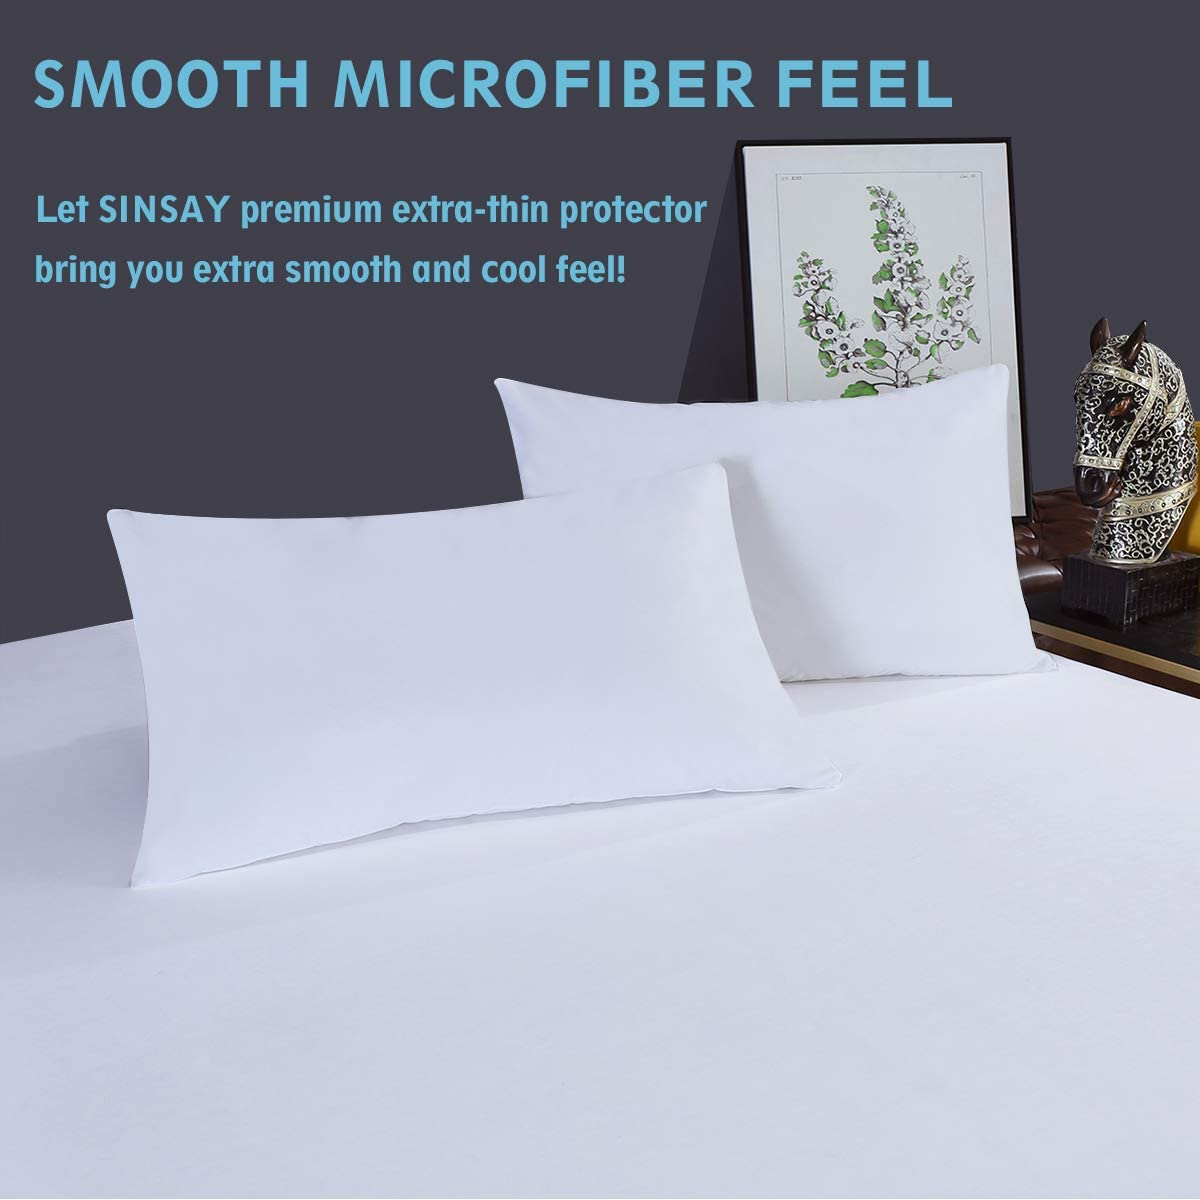 Hypoallergenic Vinyl Free Bed Cover Premium Breathable Mattress Cover Stretches up to 14 Inches SINSAY 2 Pack Twin Size 100/% Waterproof Mattress Protector